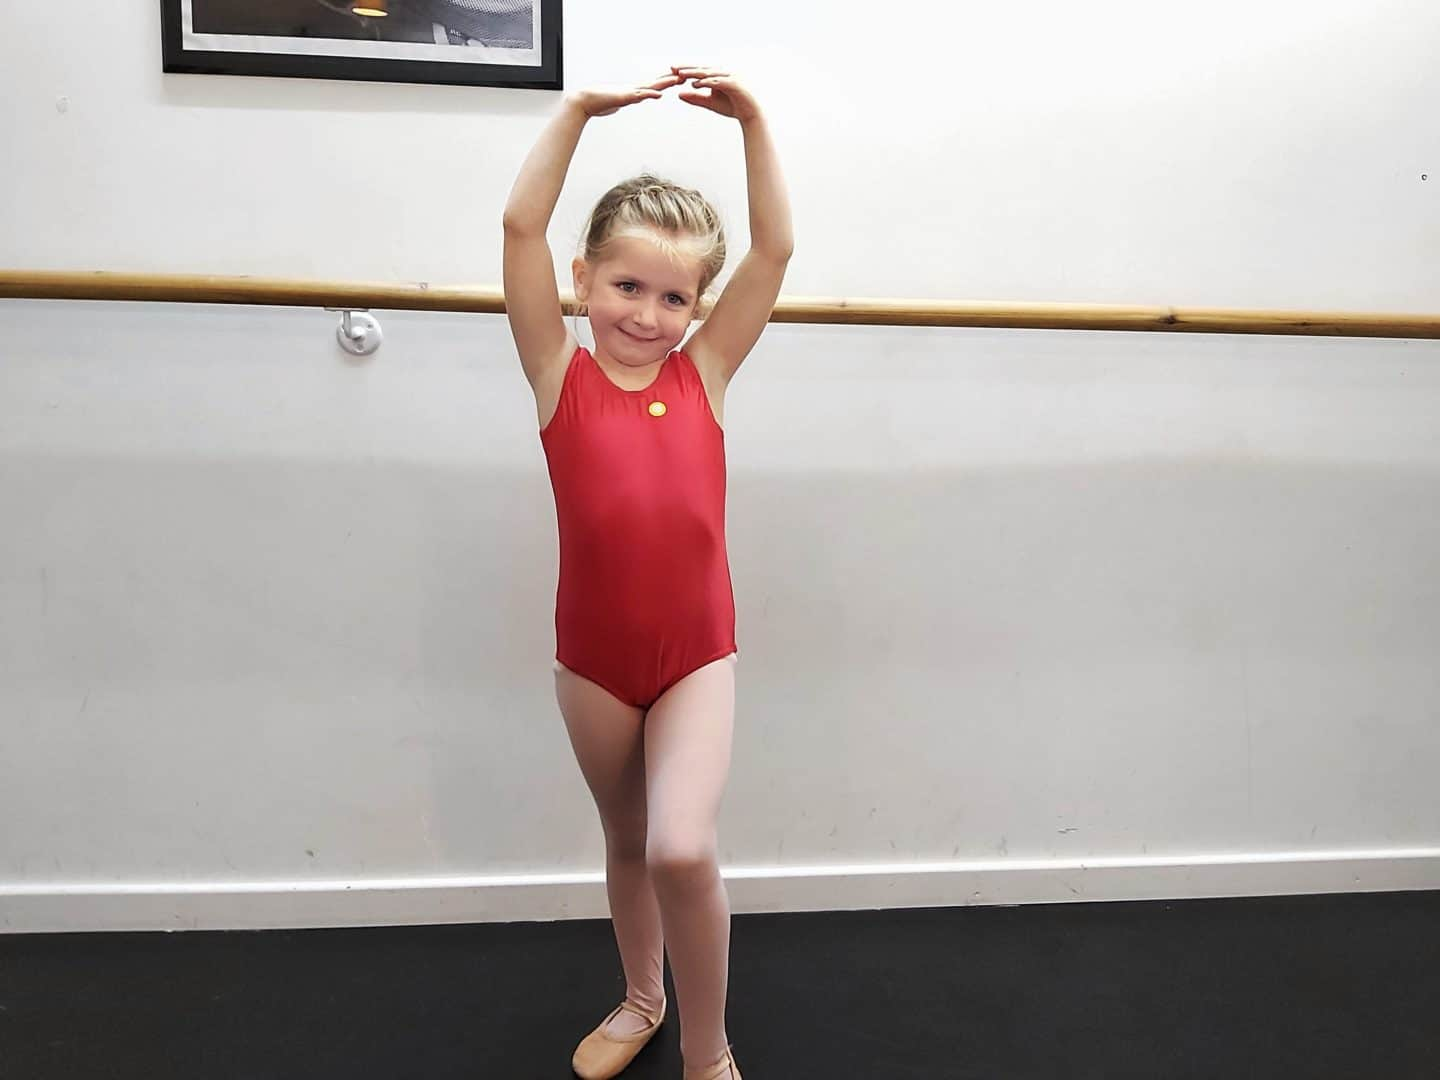 Ballet show outfits from Dance Gear